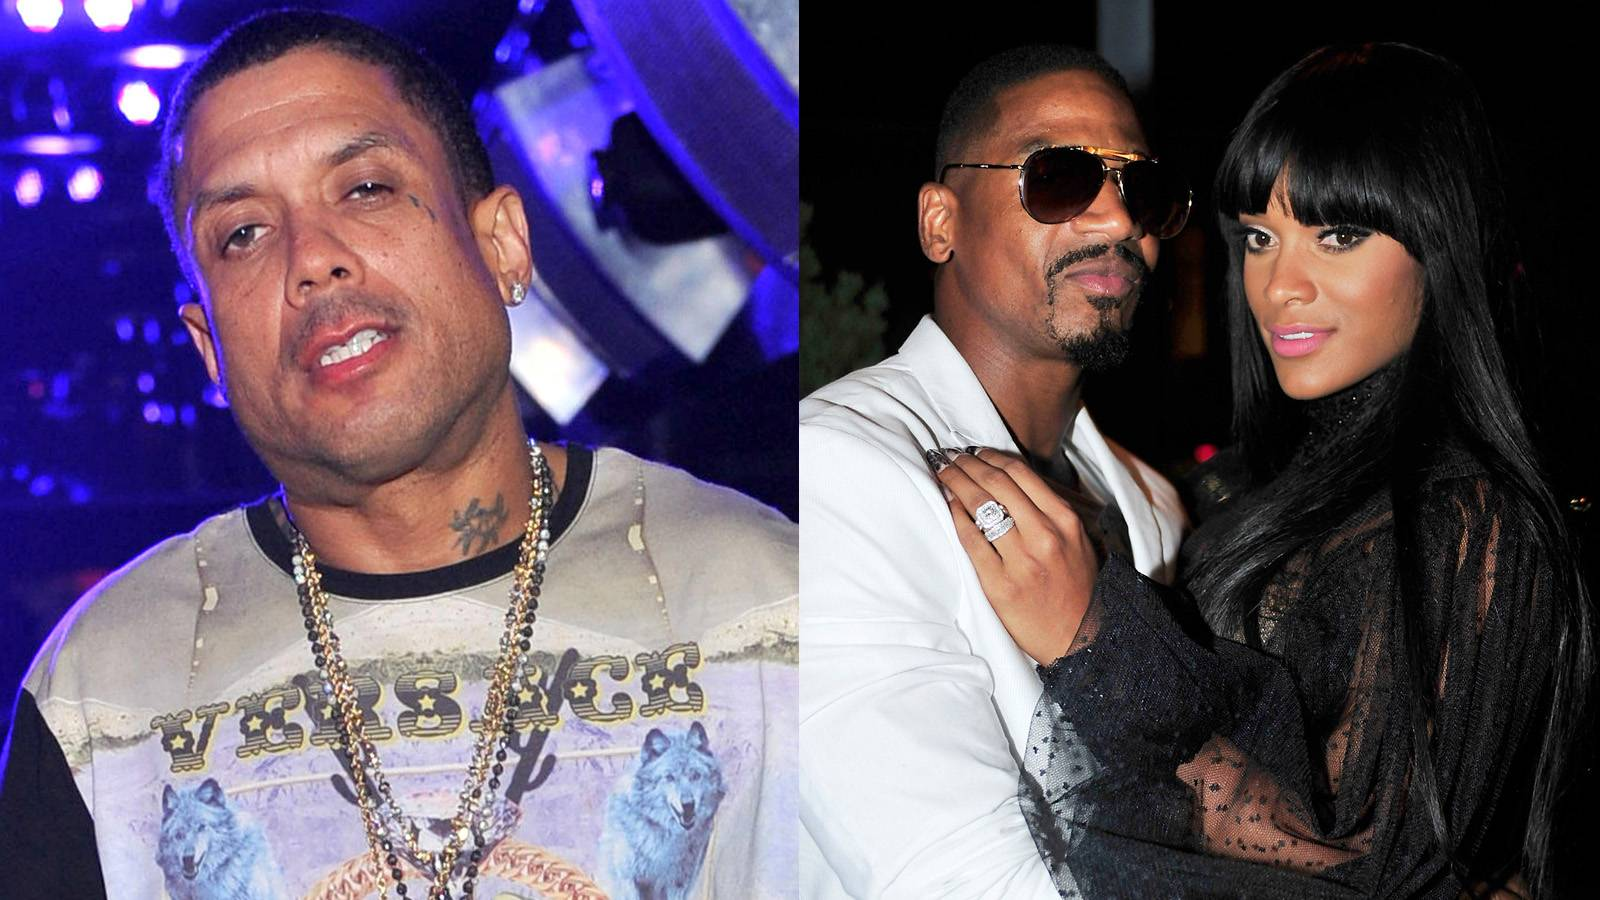 Beinzino and Stevie J Still at It - Some people really need to just step away from social media, especially celebrities, but we know that's not going to happen. Enter Benzino's latest rant. The Love and Hip-Hop Atlanta star felt the need to defend his behavior at Monday's reunion and took to Instagram stating that Joseline and Stevie J are fake. Zino alleged that he paid their bills one month before the LHHATL reunion because their lights were cut off and that the couple was being extra nice to he and Althea but once the cameras started rolling and security was around, they flipped the switch. Benzino has since deleted the statement but not before the Internets got a screengrab!  (Photos from left: Prince Williams/FilmMagic, Moses Robinson/Getty Images for UrbanDaddy)